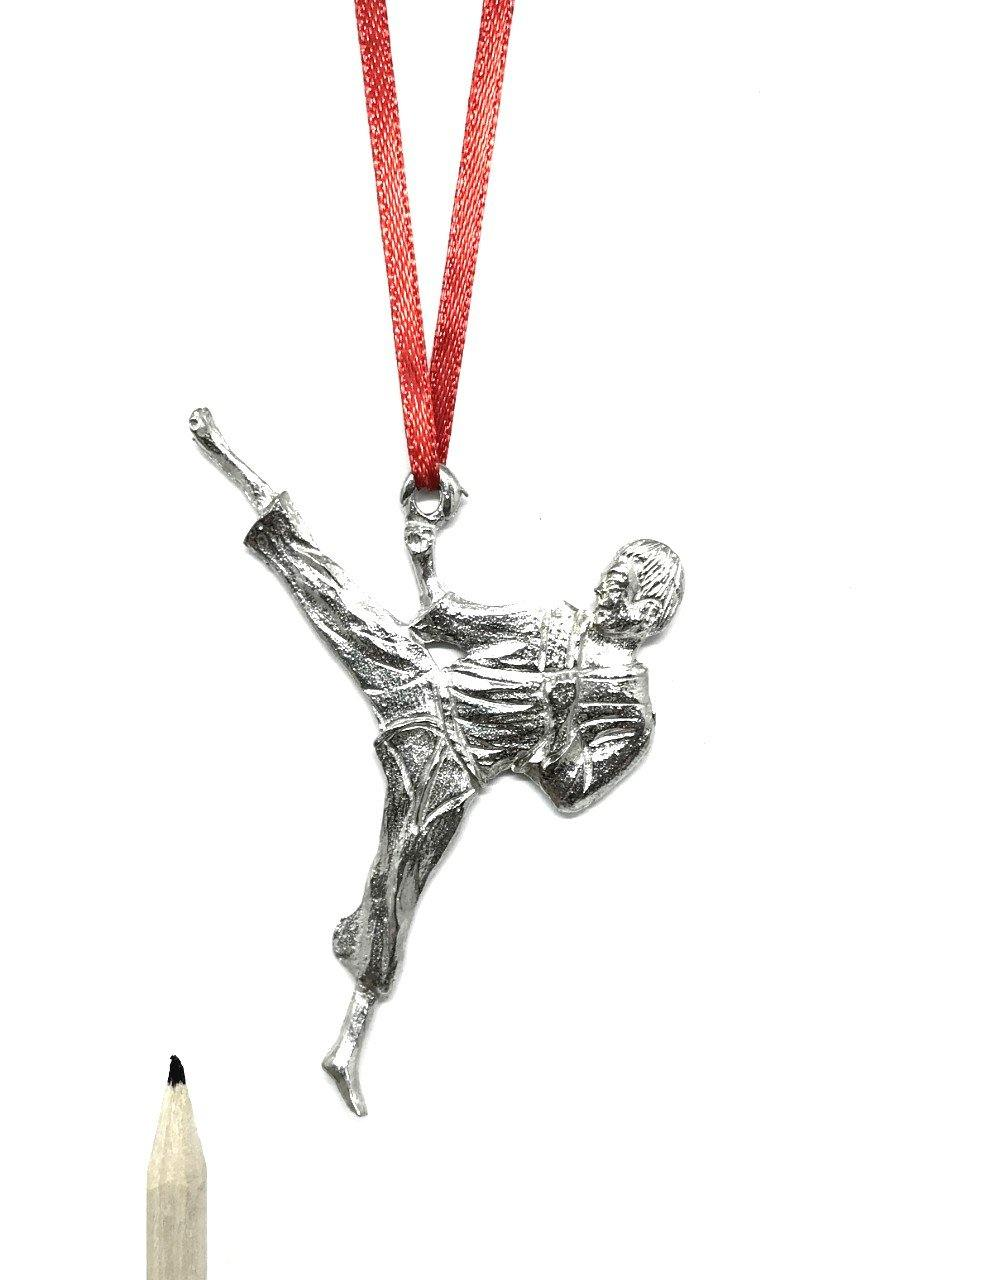 1069 Karate Martial Arts Team Coach Keepsake Christmas Holiday Ornament Pewter - House of Morgan Pewter